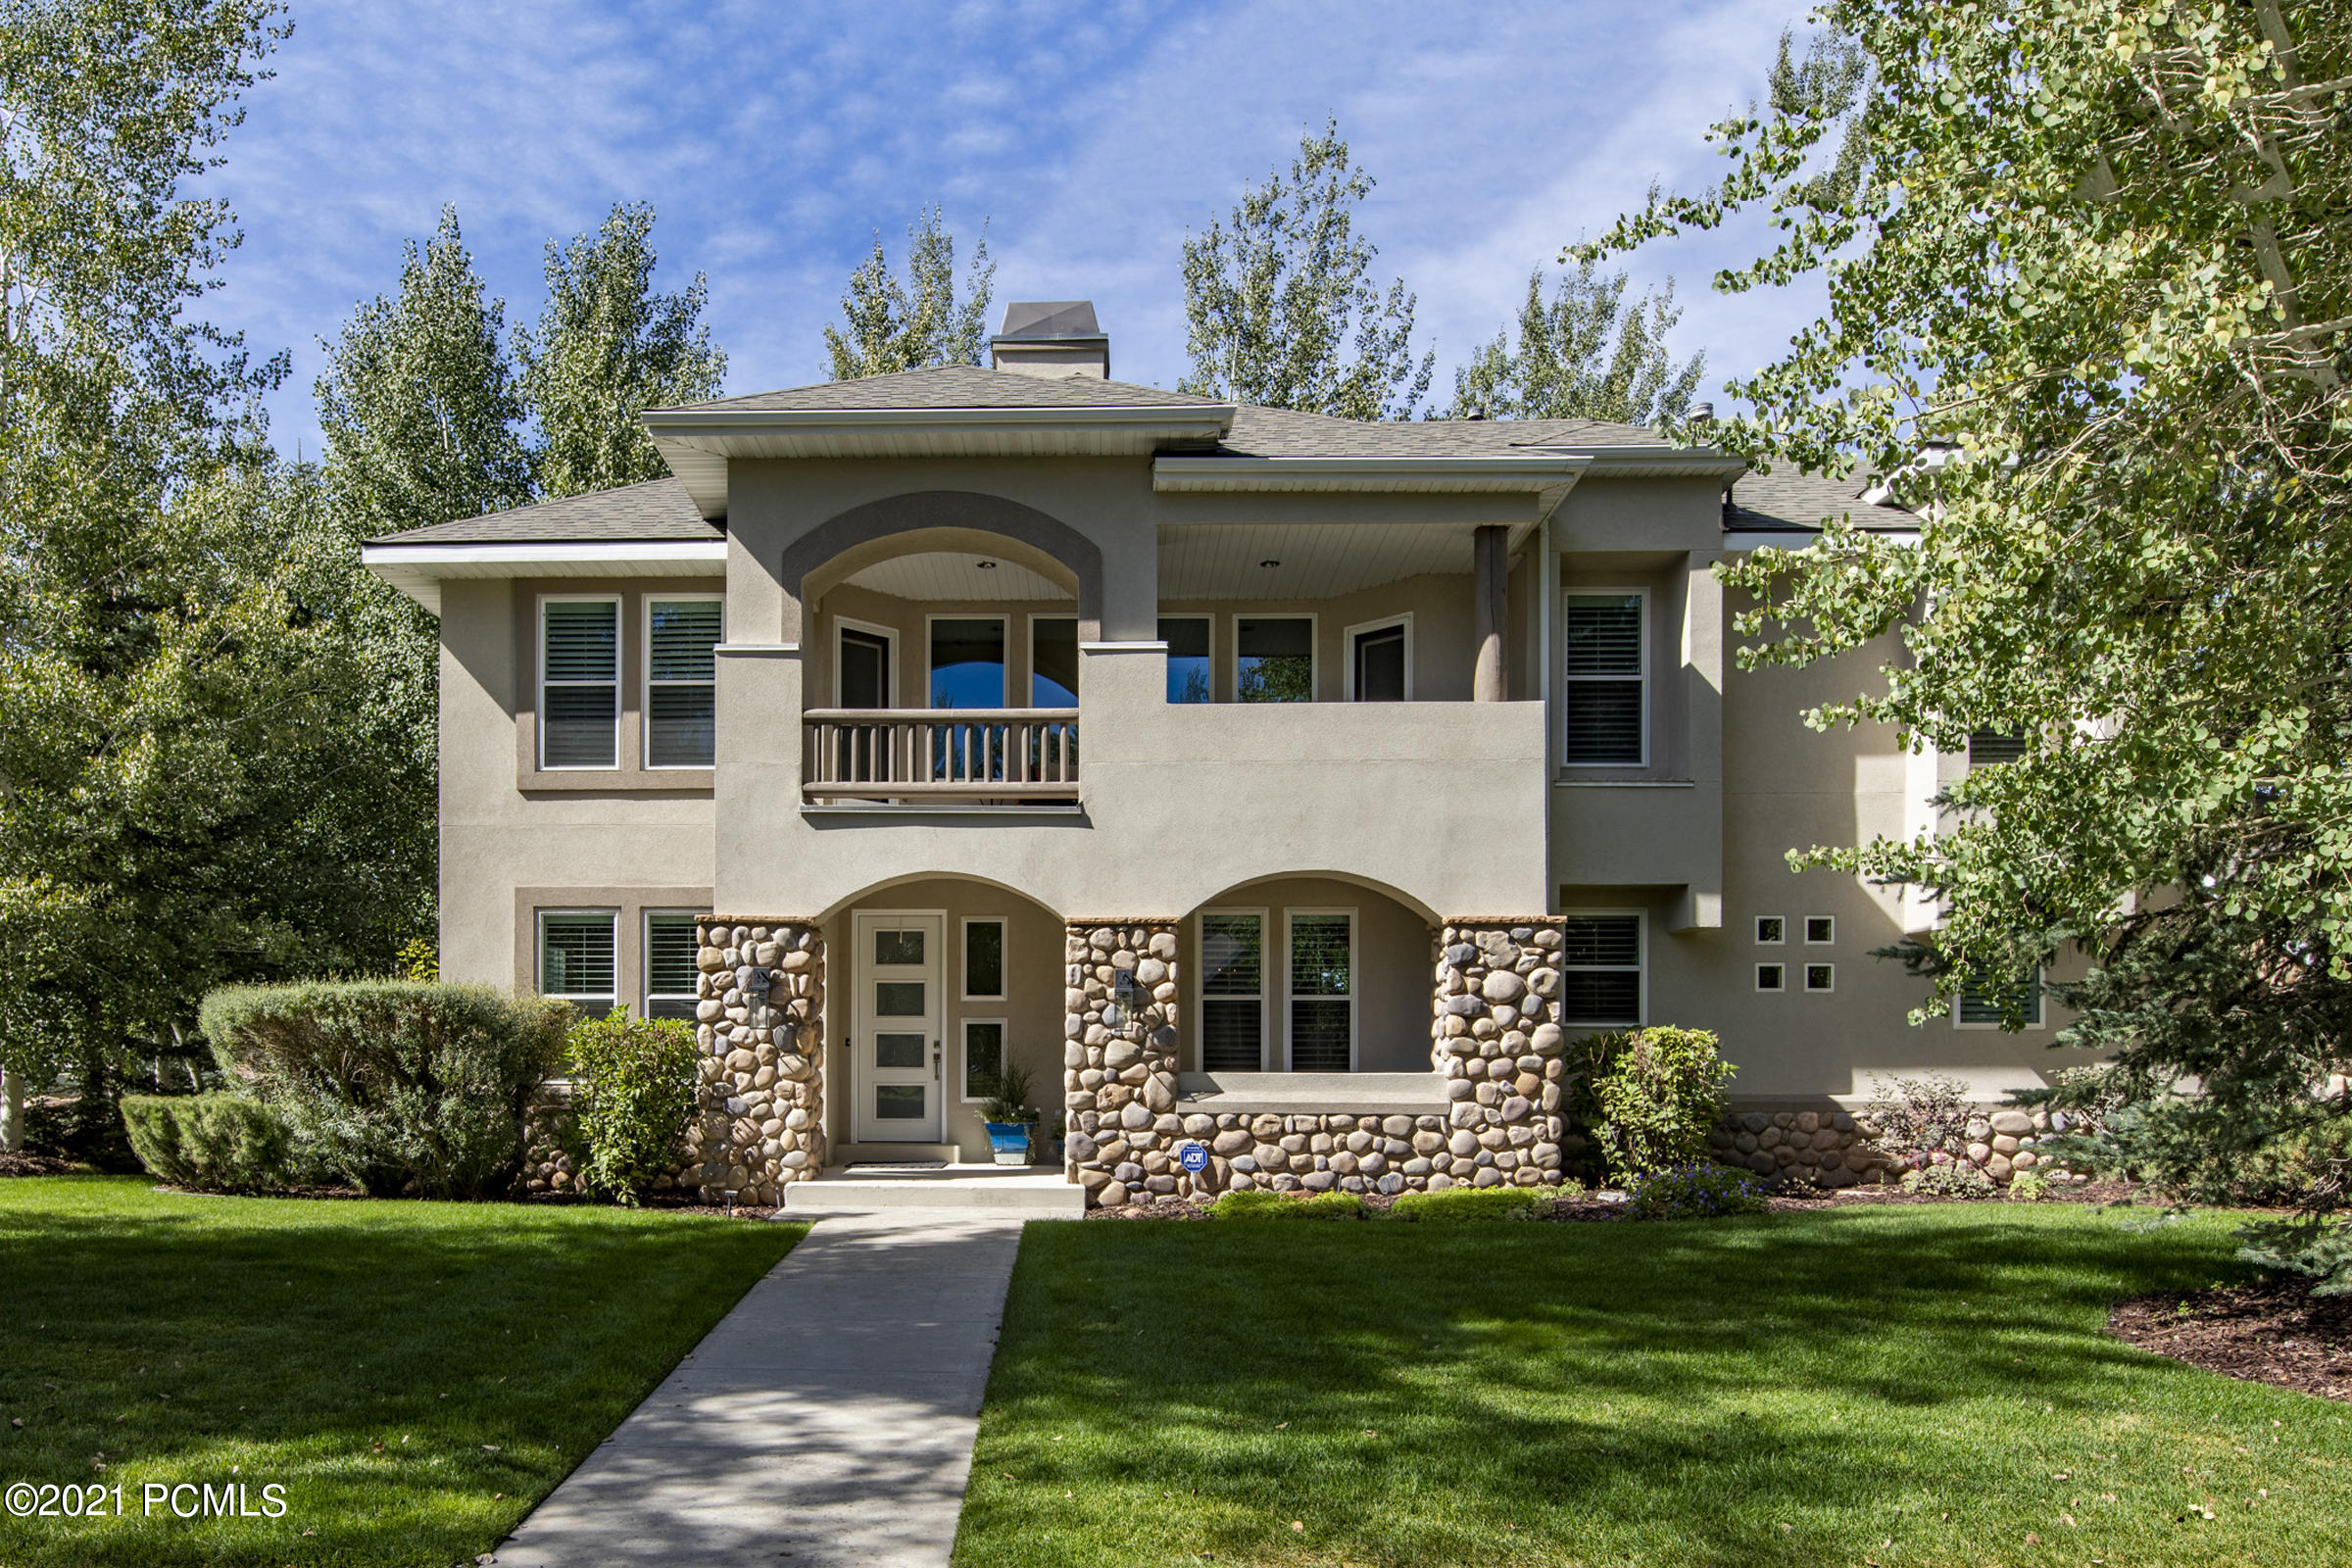 4433 West Sawmill Road, Park City, Utah 84098, 4 Bedrooms Bedrooms, ,3 BathroomsBathrooms,Single Family,For Sale,West Sawmill,12100618